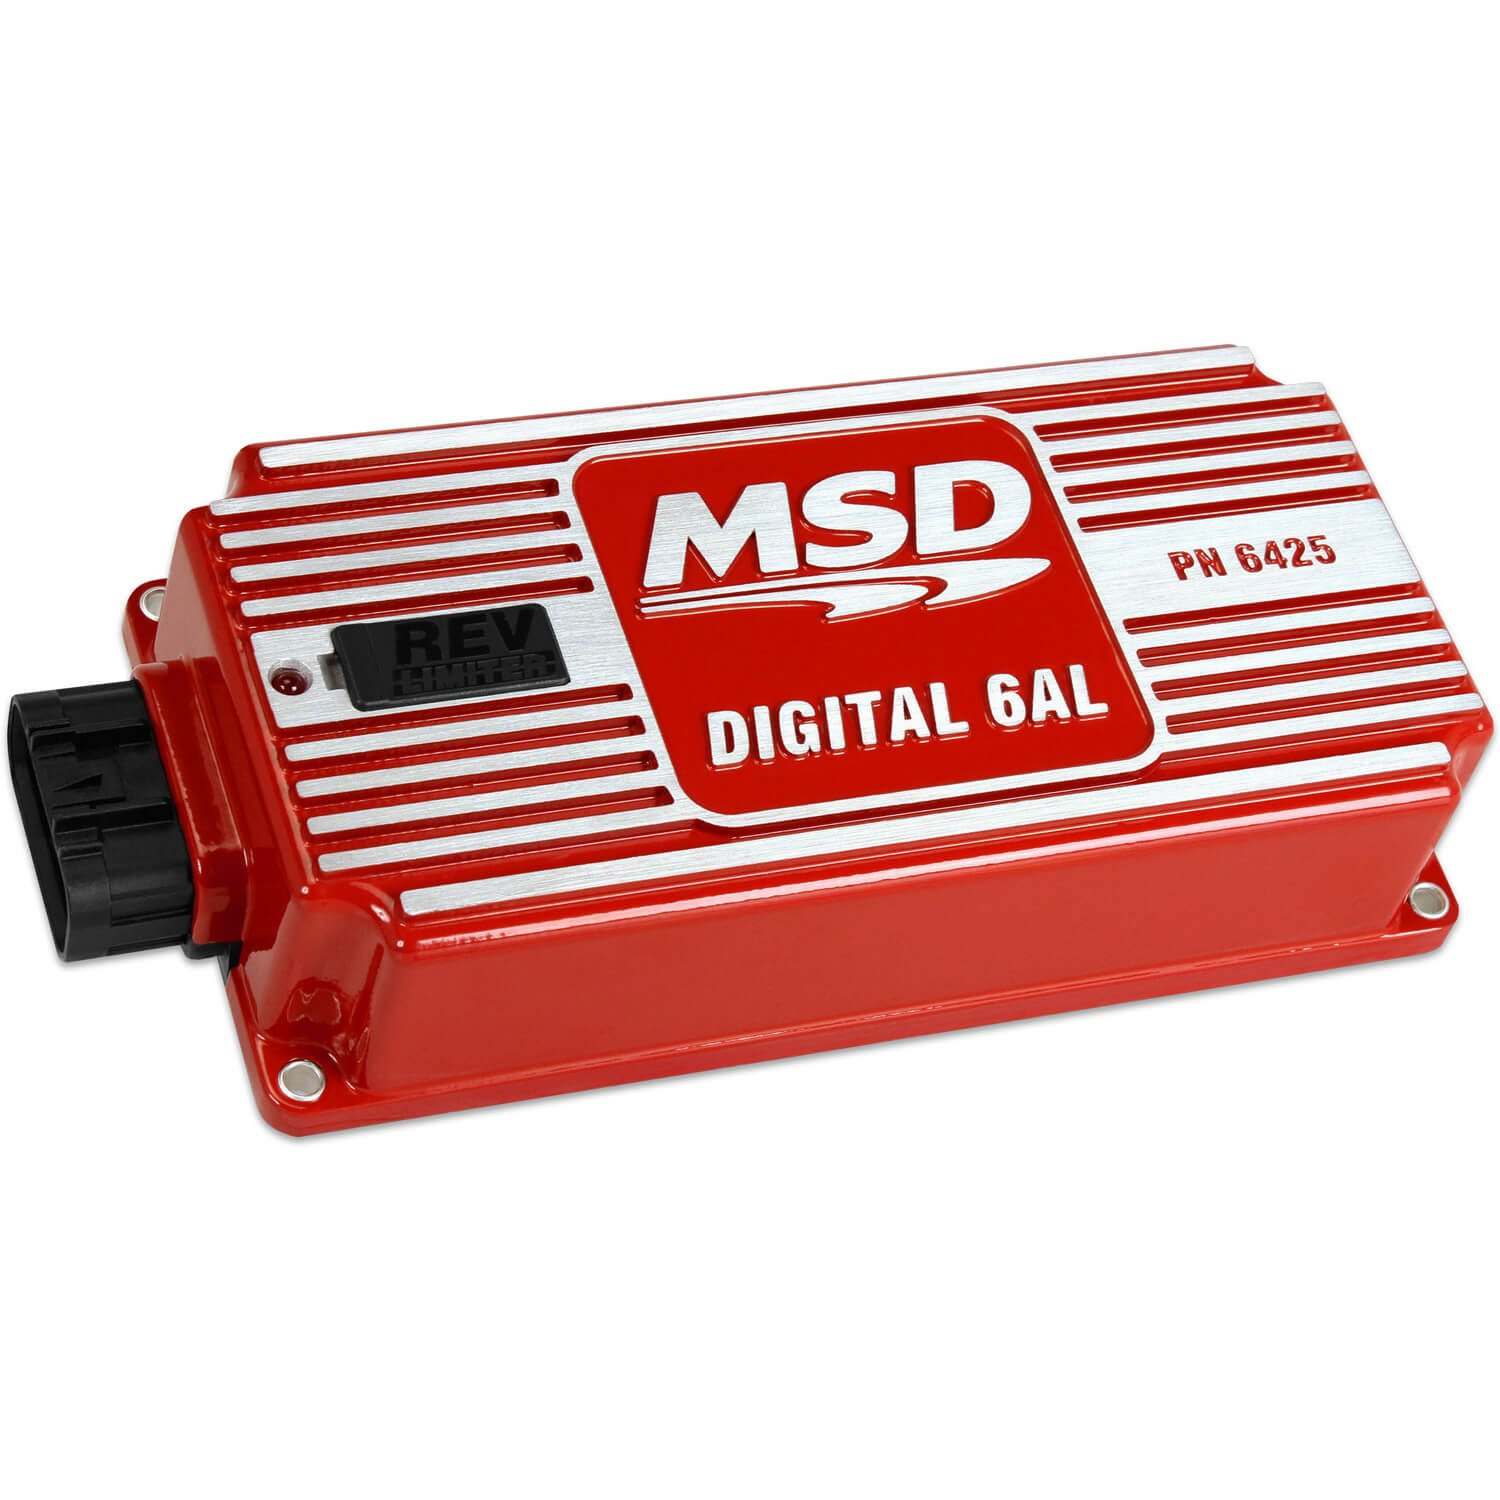 msd 6425 digital 6al ignition control rh holley com